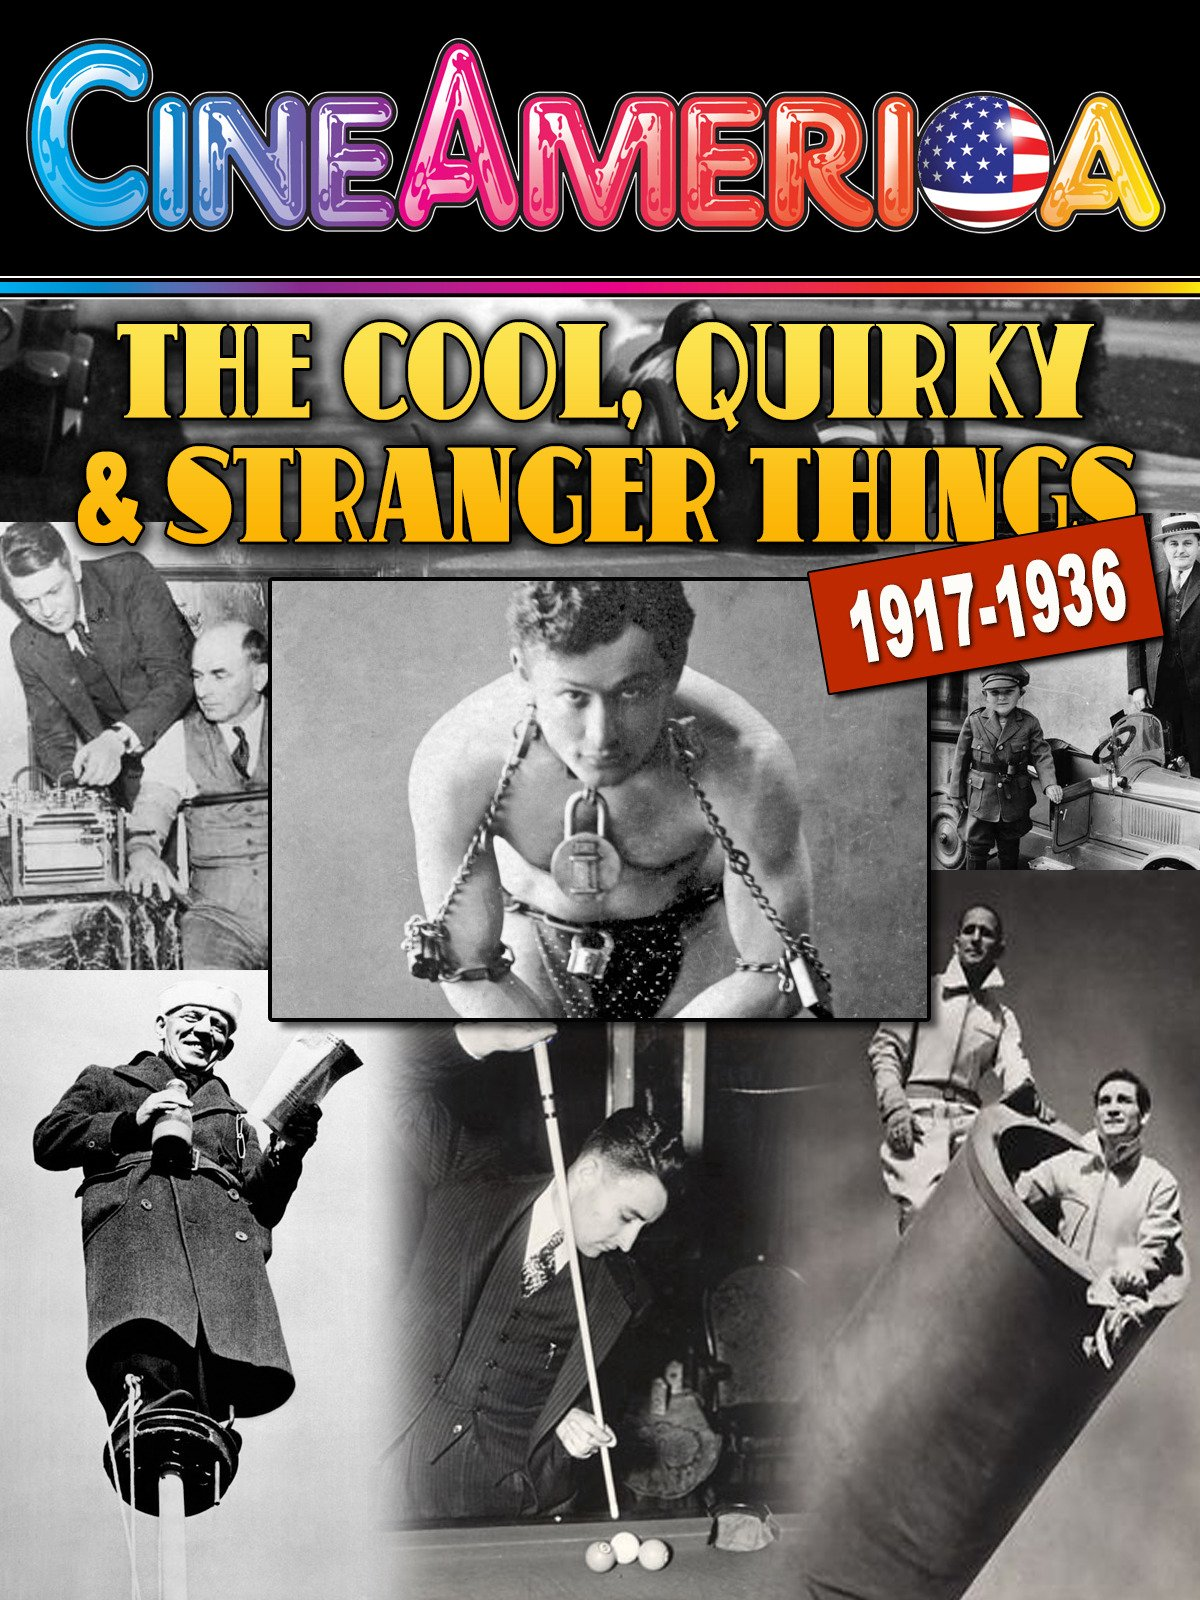 The Cool, Quirky & Stranger Things 1917-1936